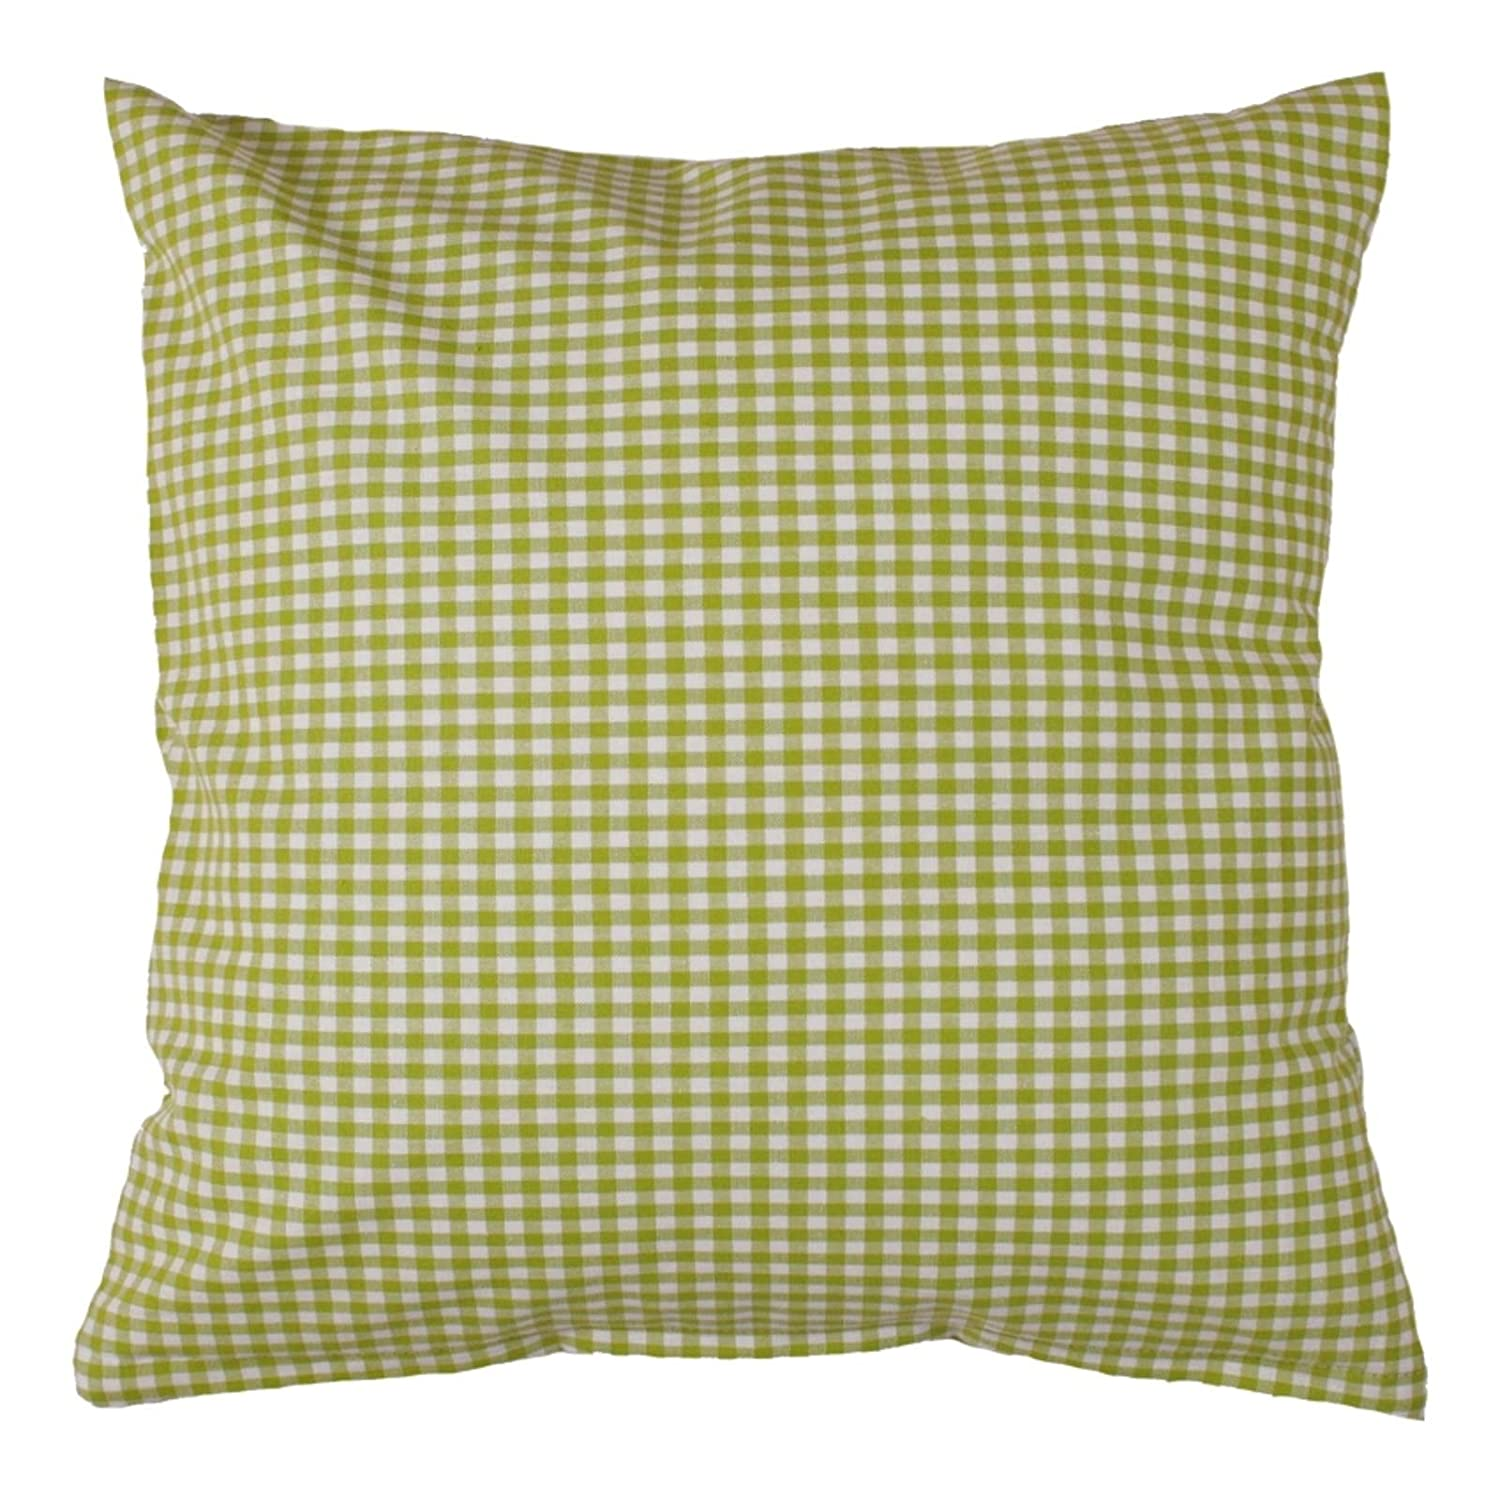 Cushion cover 40 x 40 cm vichy karo 5x5 mm cotton plaid gingham zip cotton brown 40 cm x 40 cm amazon co uk kitchen home